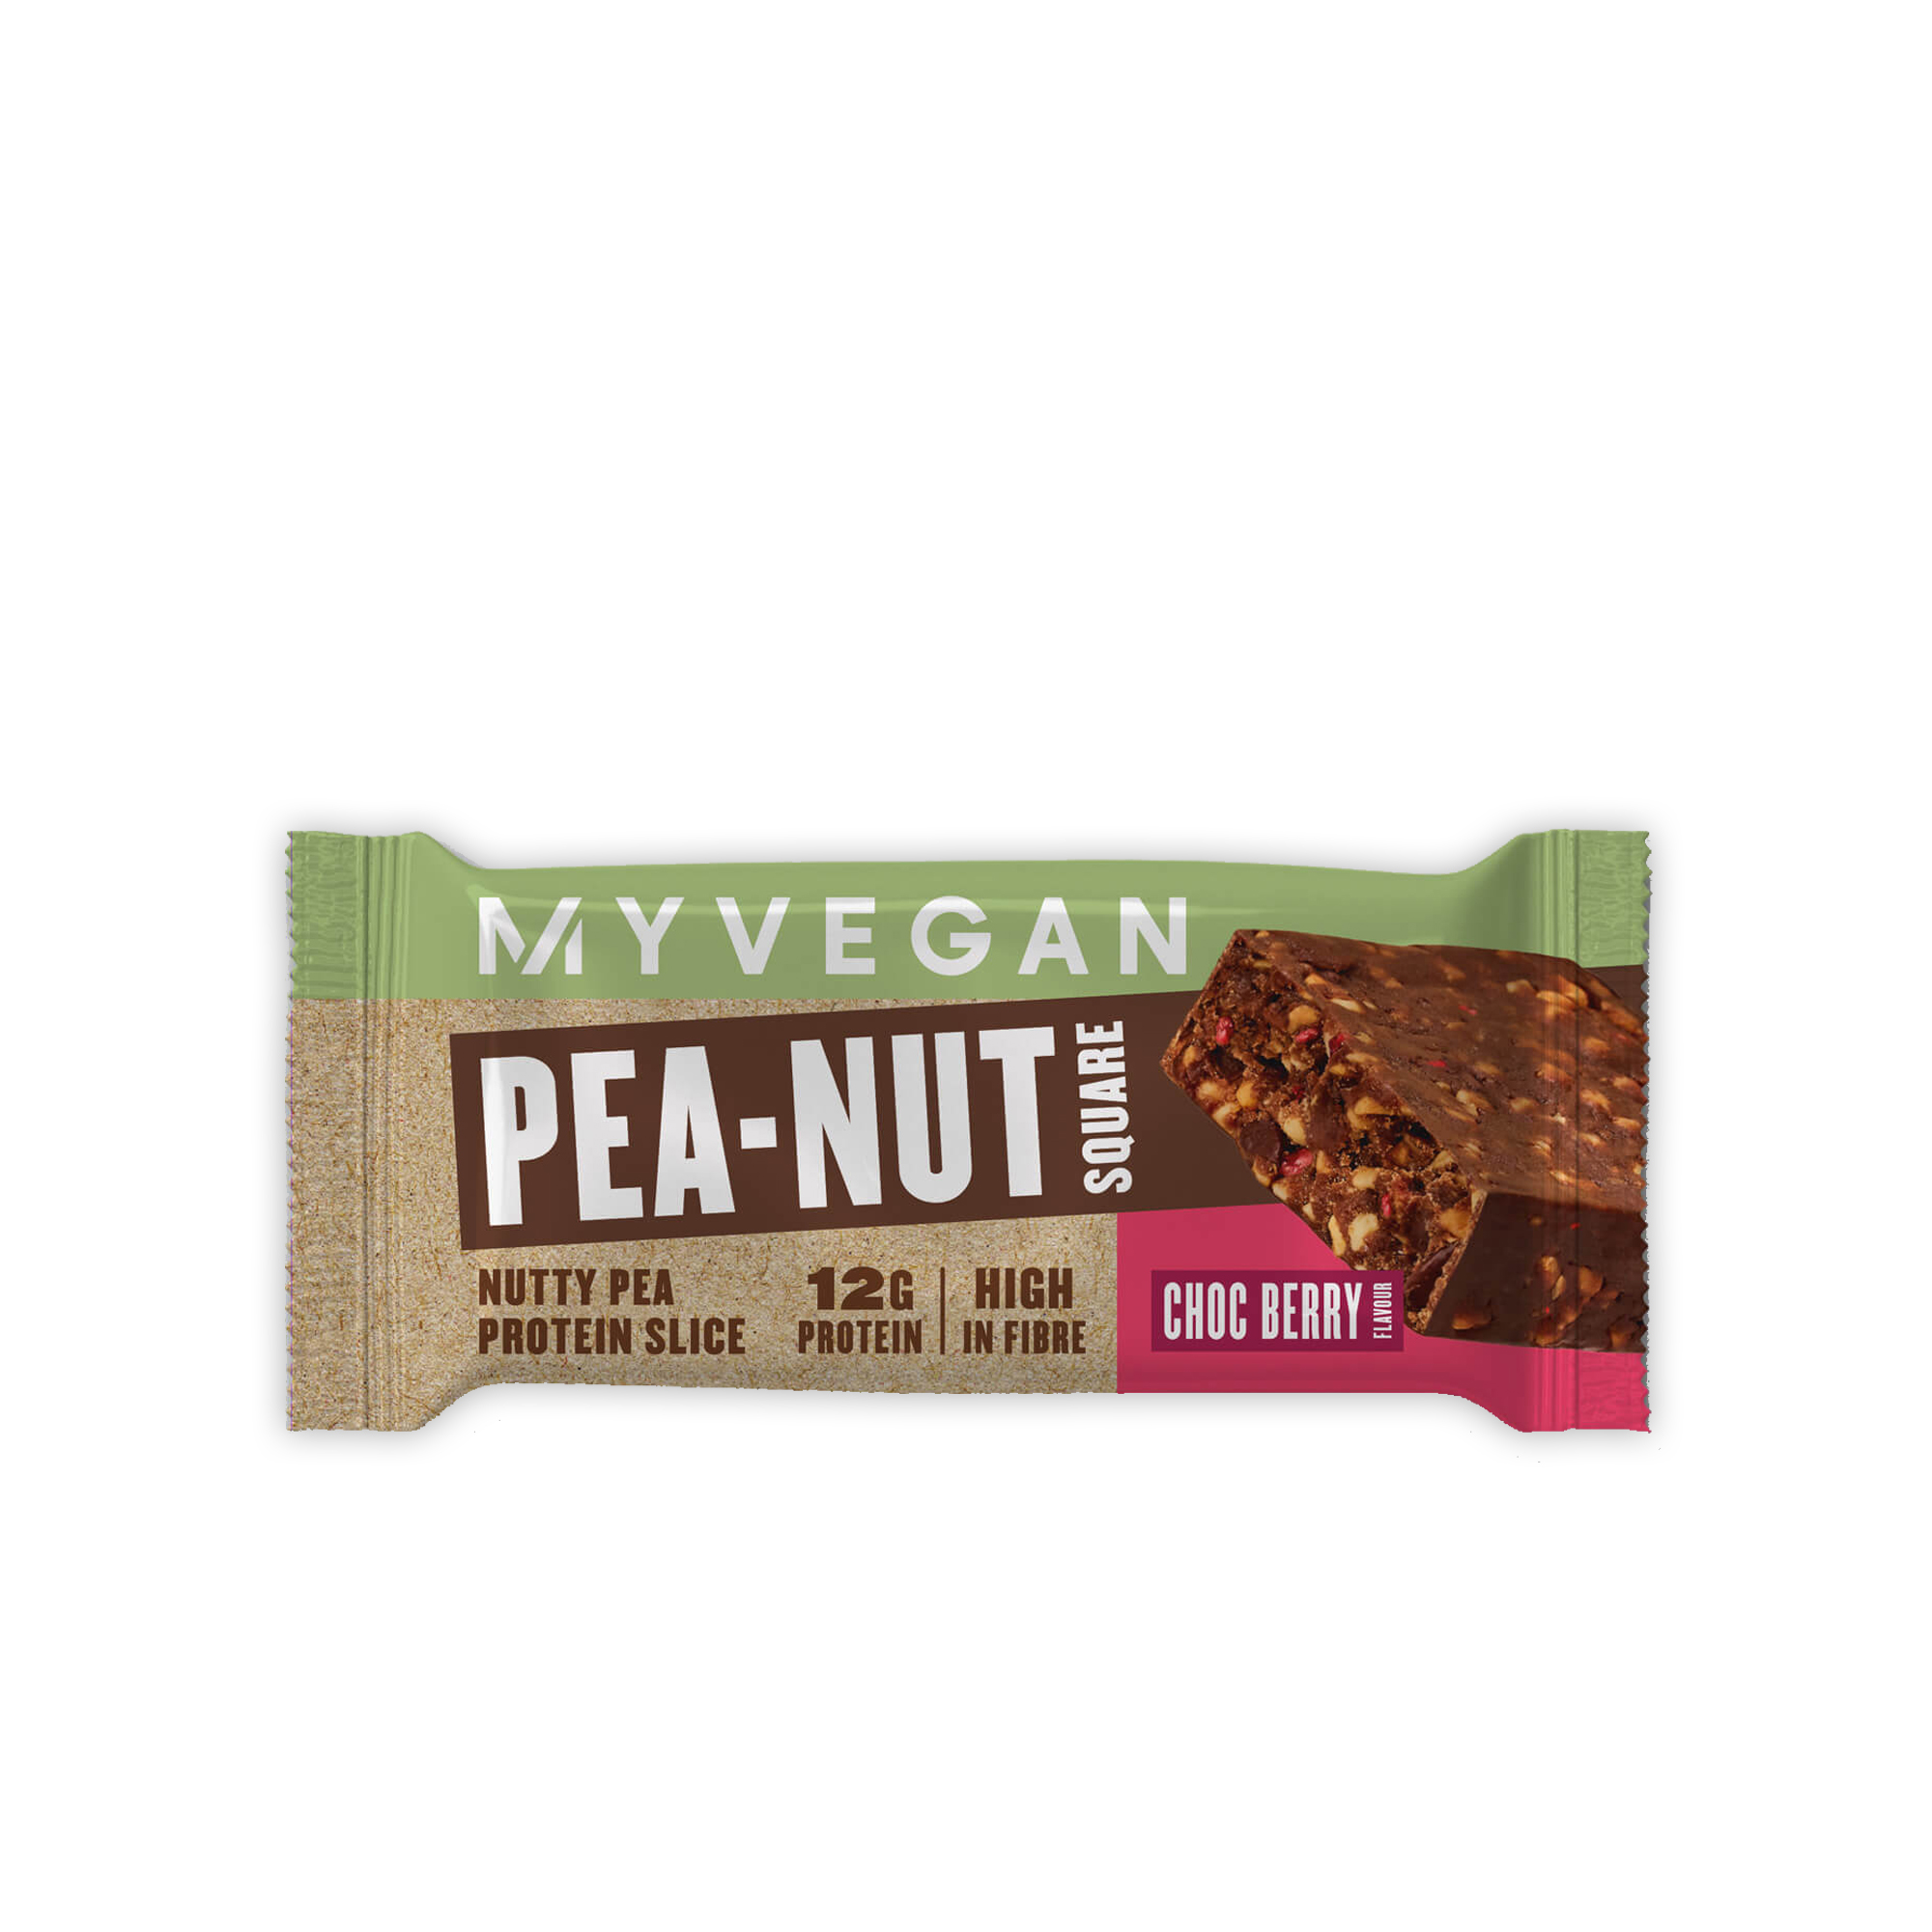 MyVegan Pea-Nut Square CHOC BERRY Protein Slice - Nutrition Depot Philippines